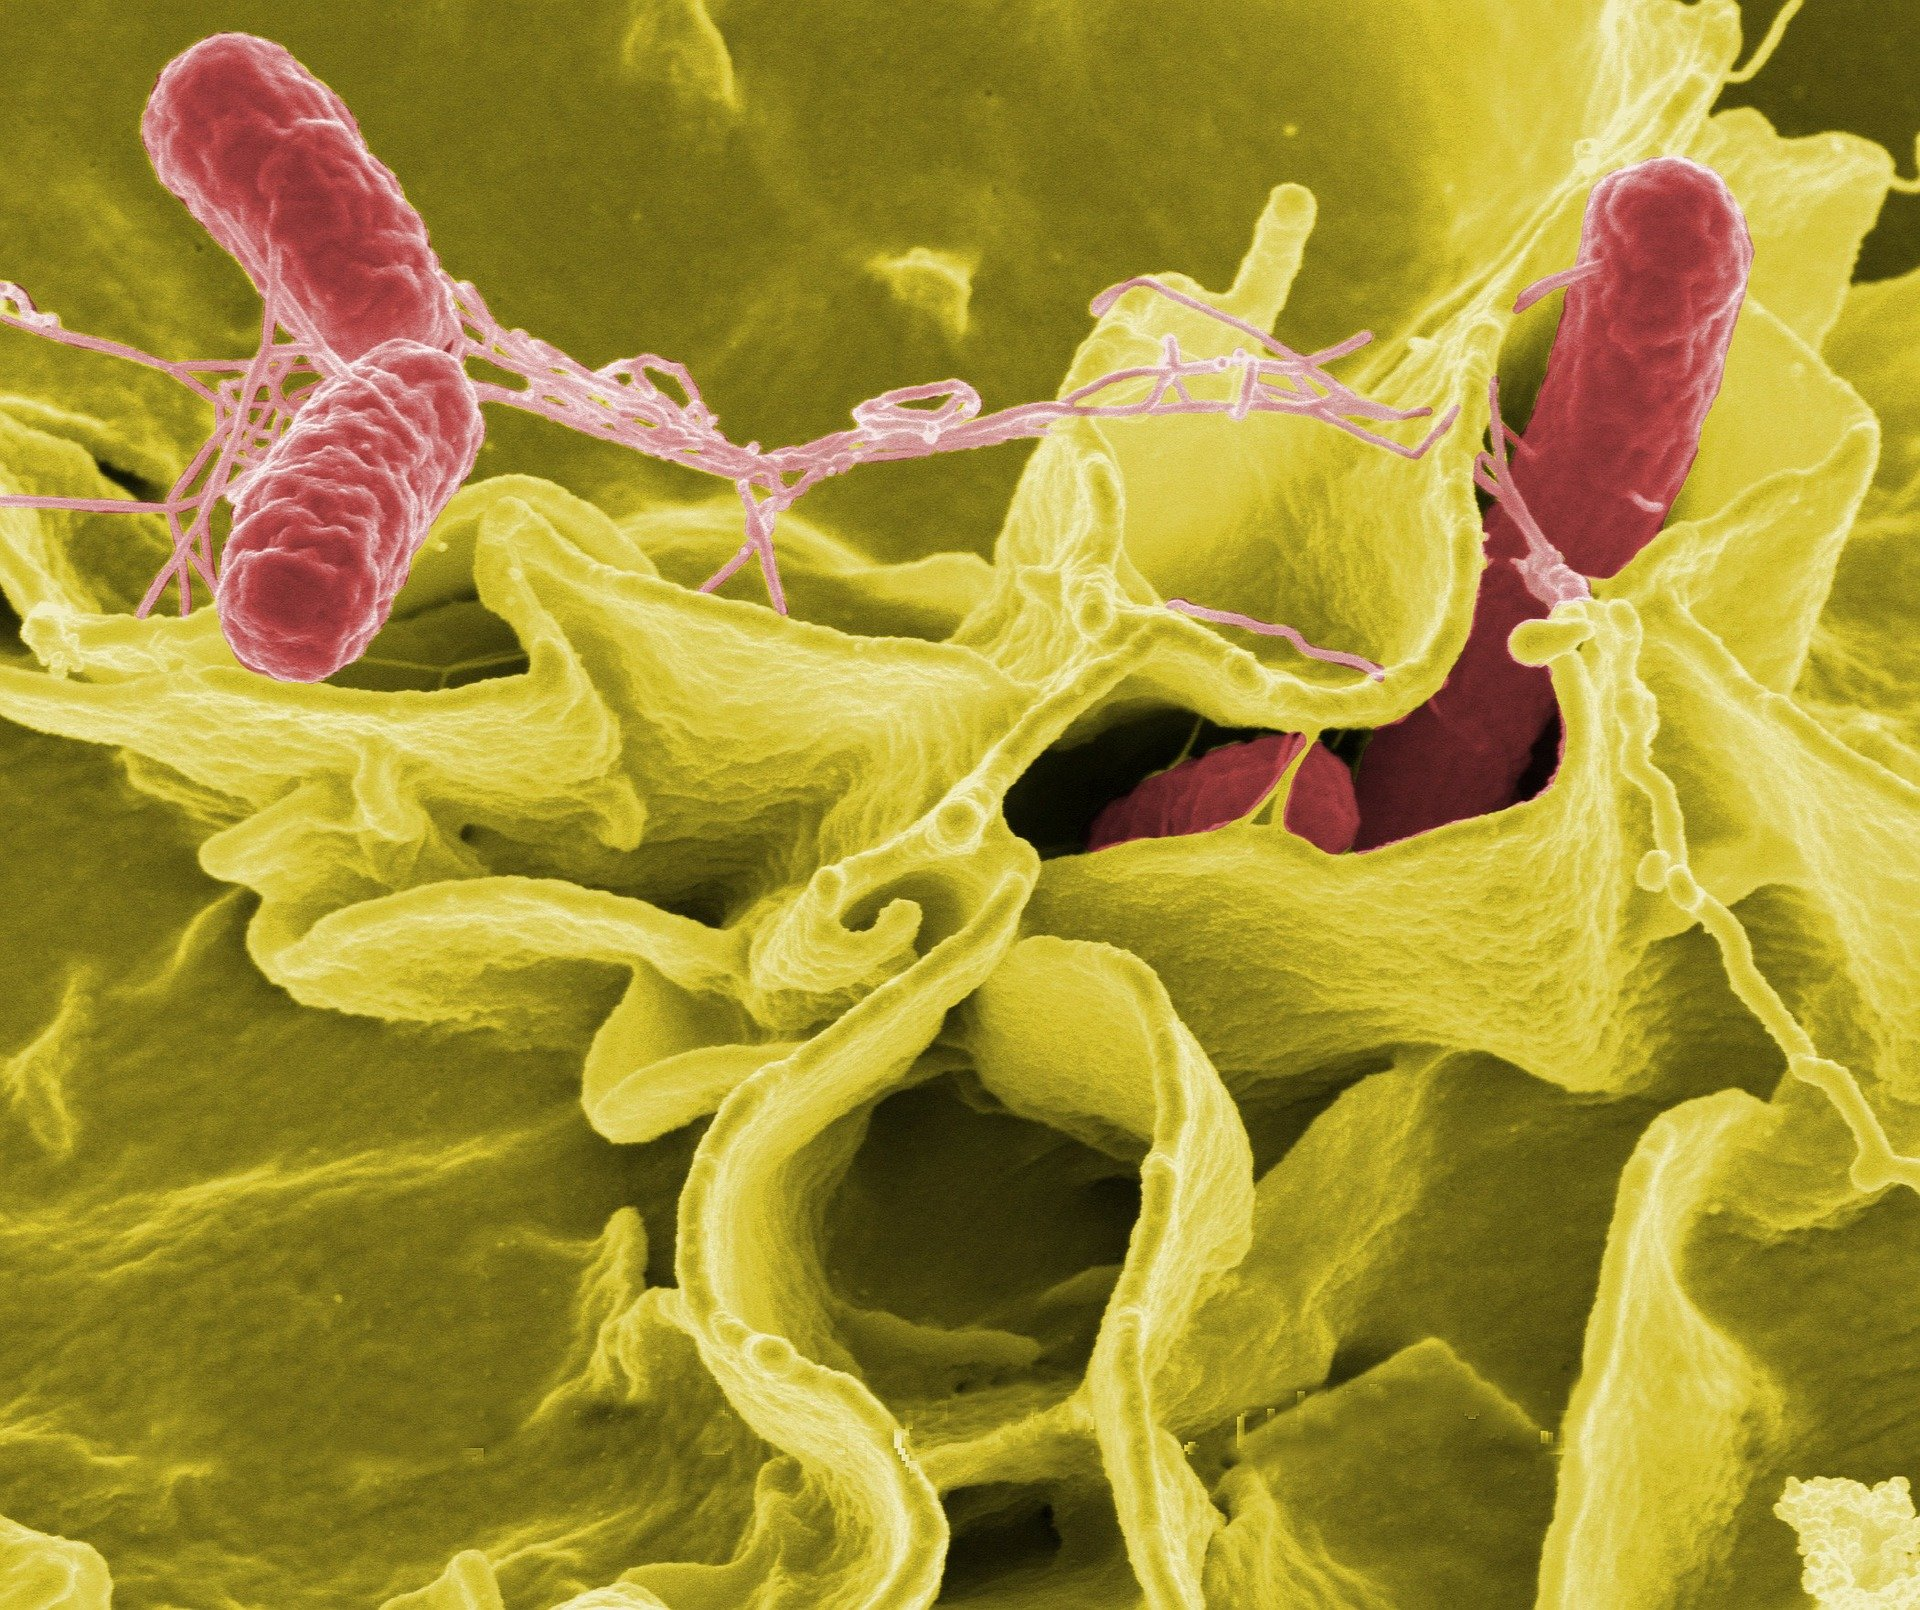 Researchers uncover tools used by predatory bacteria to escape unharmed from prey cell